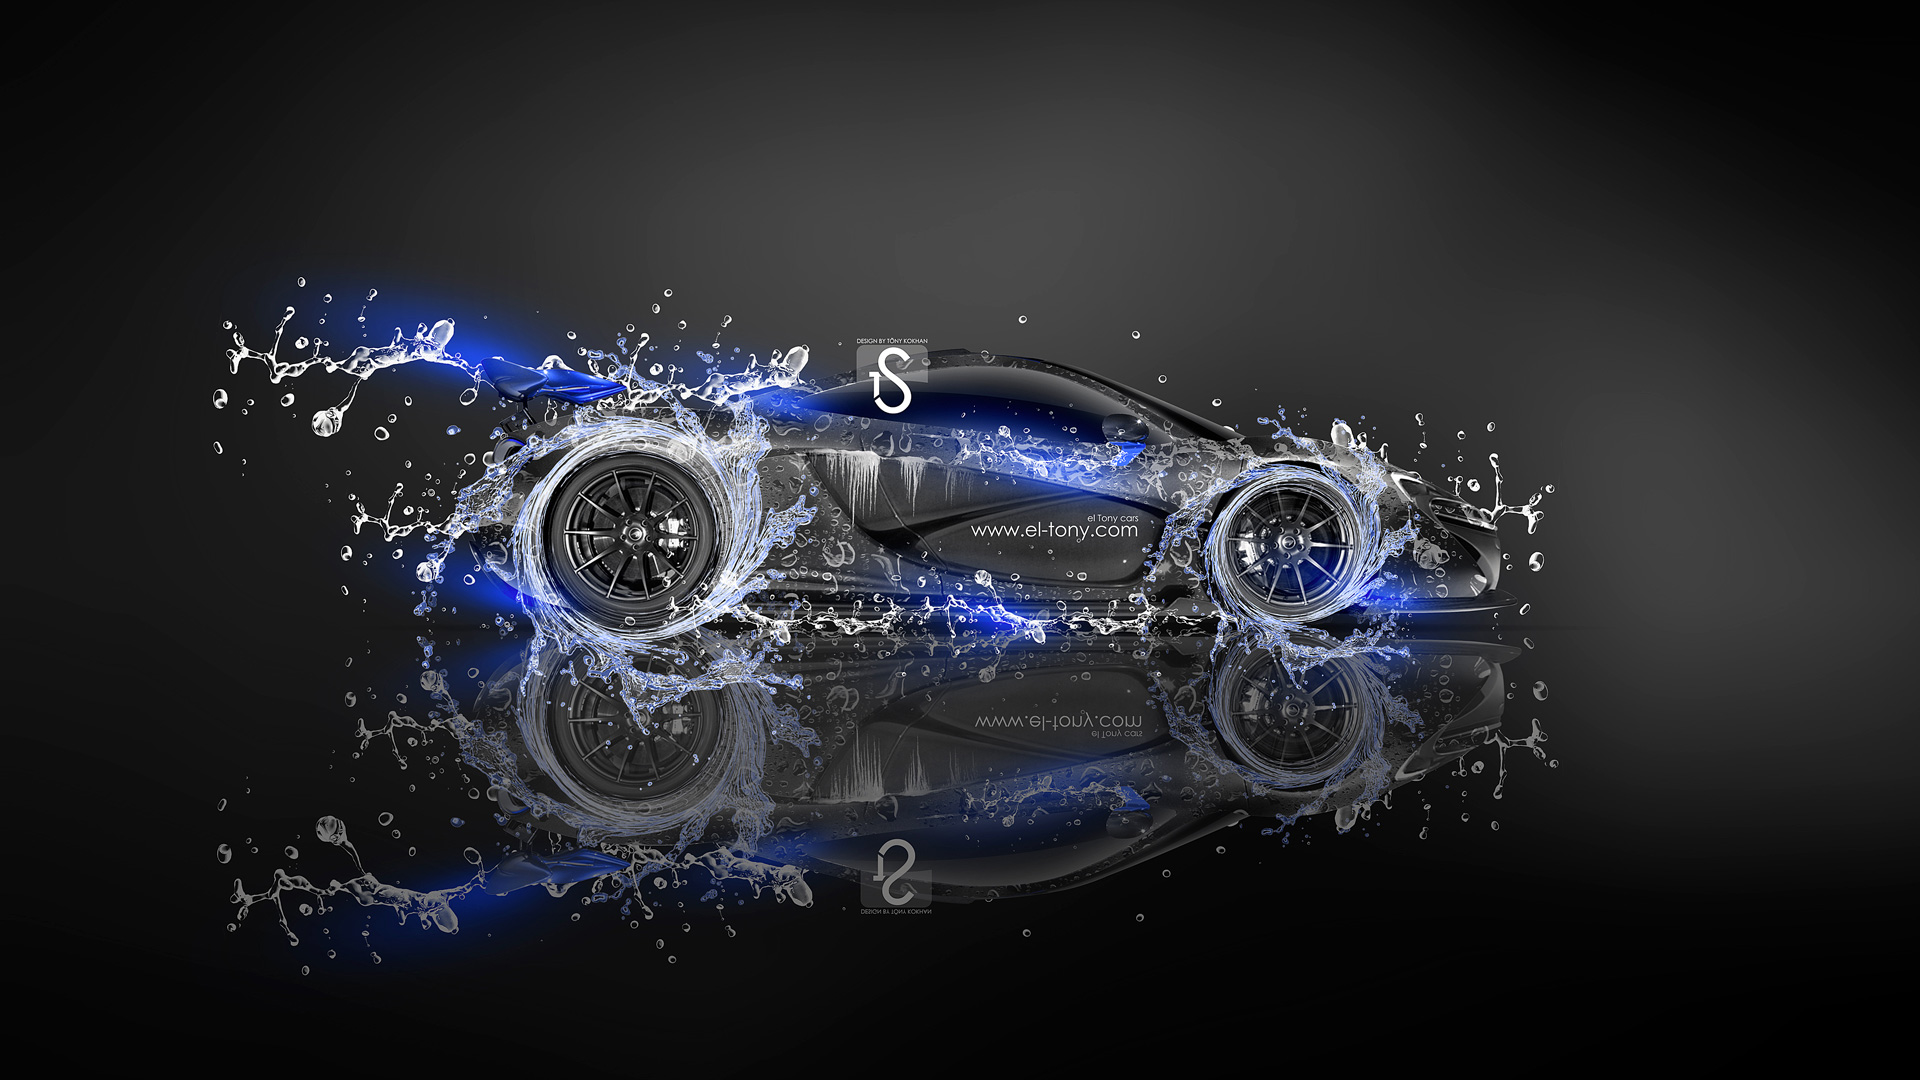 Bon McLaren P1 Super Water Car 2013 Blue Neon